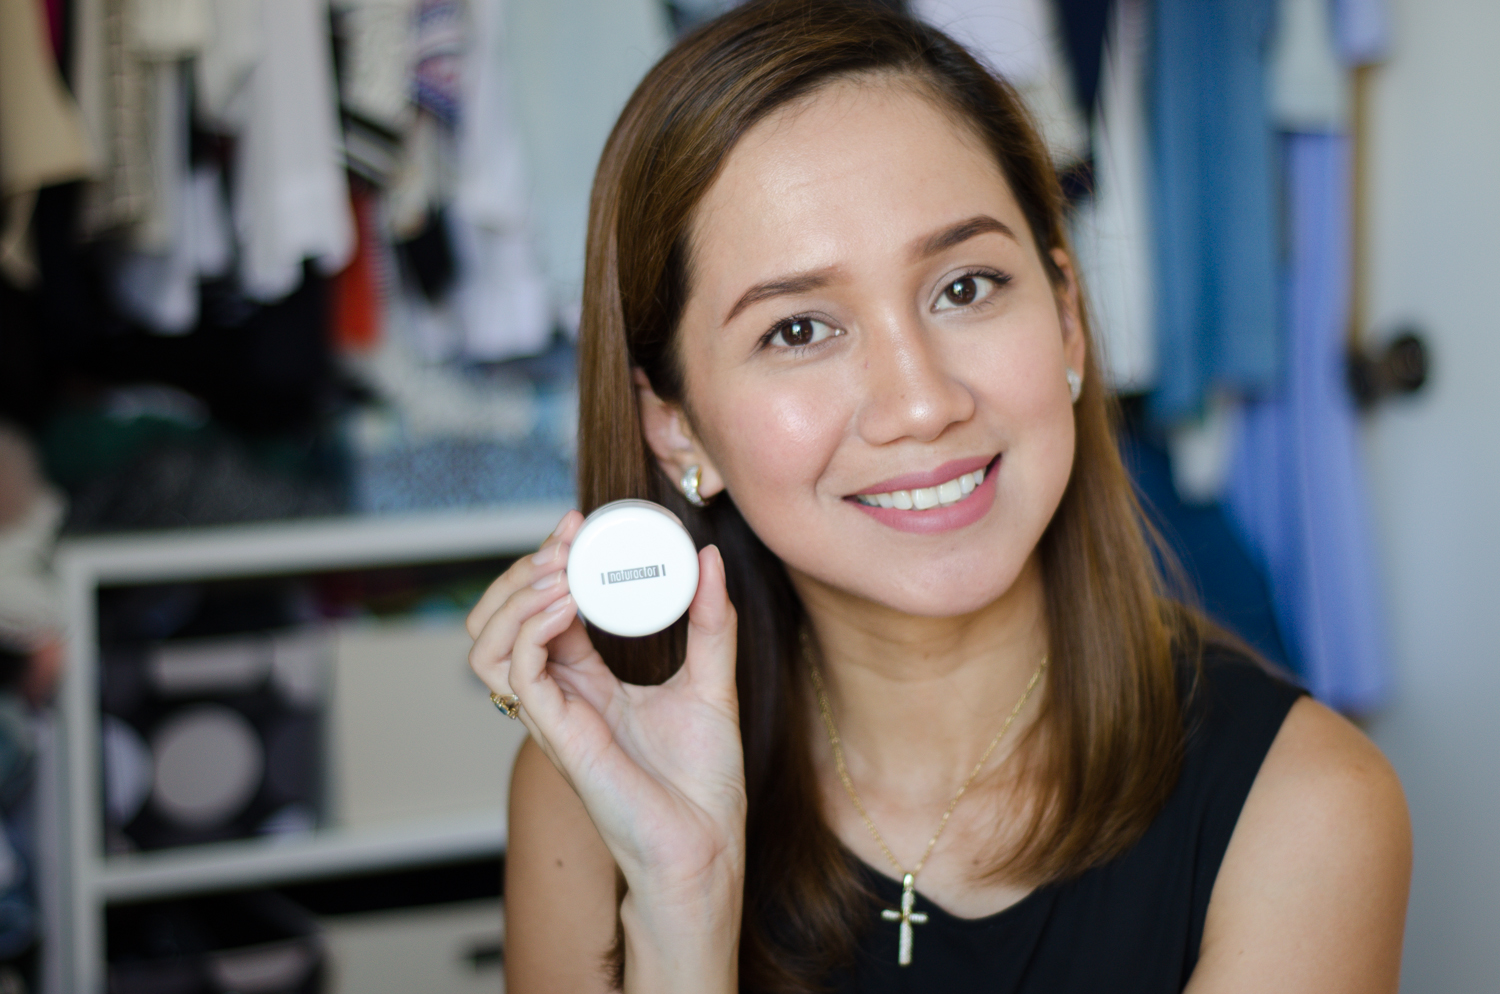 Beauty, Blog, Reviews, Beauty Reviews, Makeup Haul, How to Use Naturactor Cover Face Concealer, Silky Lucent Loose Powder, Philippine Beauty Blogger, Cebu Beauty Bloggers, Makeup, Tutorial, Cebu Fashion Blogger, Cebu Bloggers, Asian, Let's Stylize Cosmetics, Toni Pino-Oca